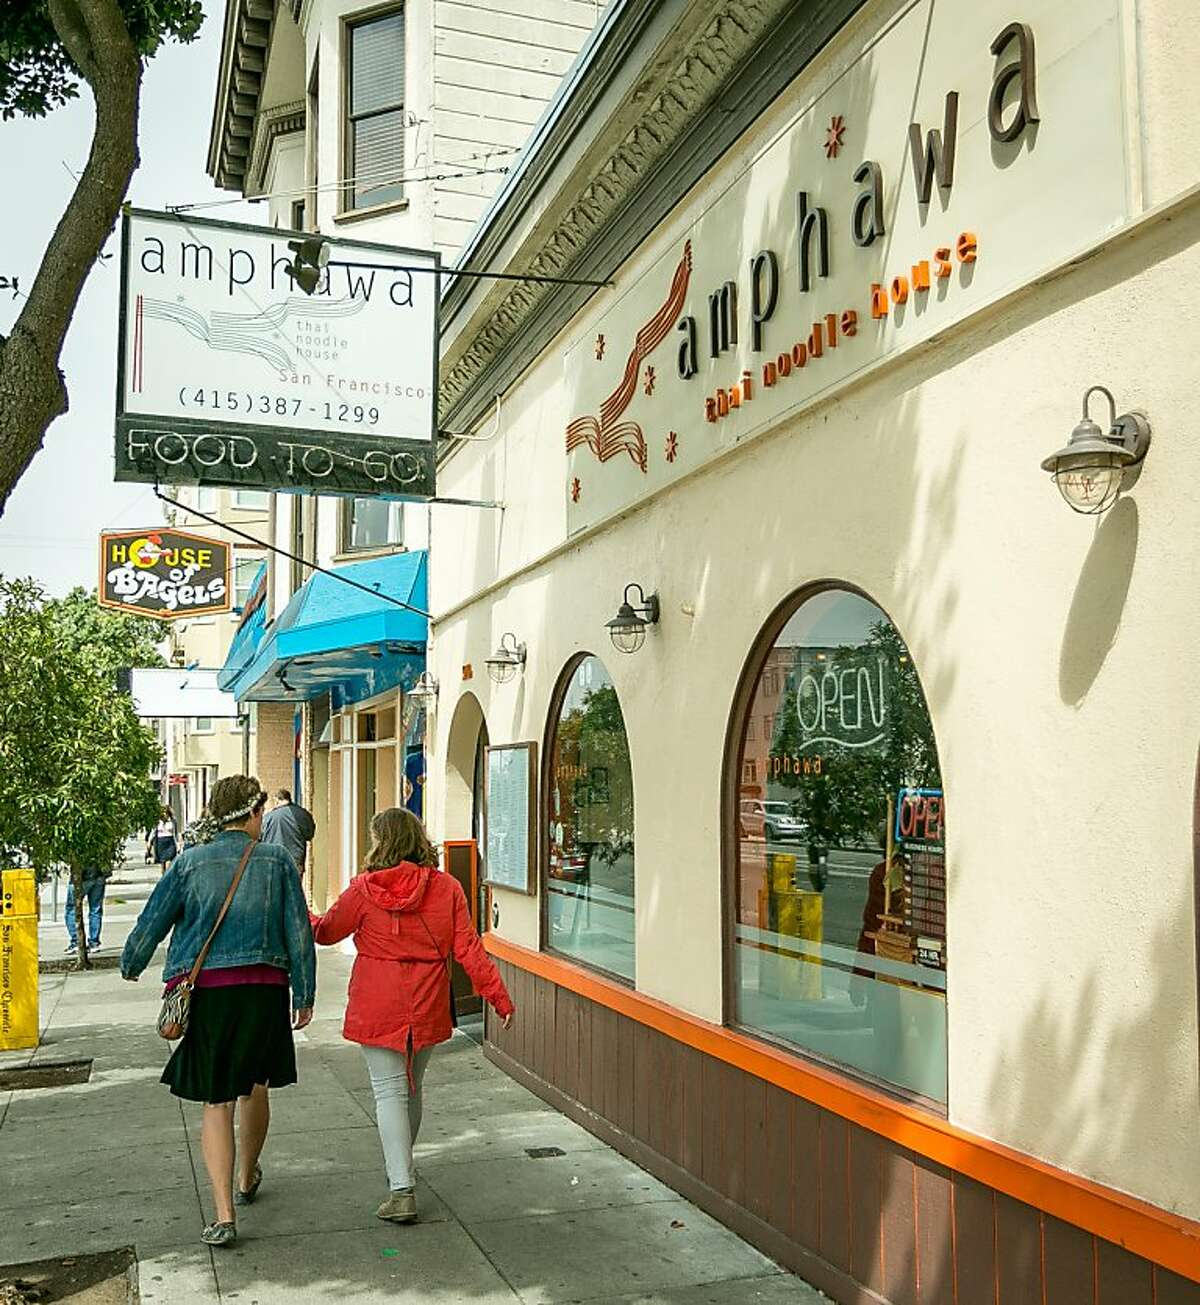 Amphawa Thai Noodle : If you're looking for a bargain, Amphawa has some great dishes at a wallet-friendly price. Check out the Dungeness crab fried rice, pork leg stew over rice, or any of the noodle soups. 5020 Geary Blvd, S.F. (415) 387-1299. www.amphawathai.com